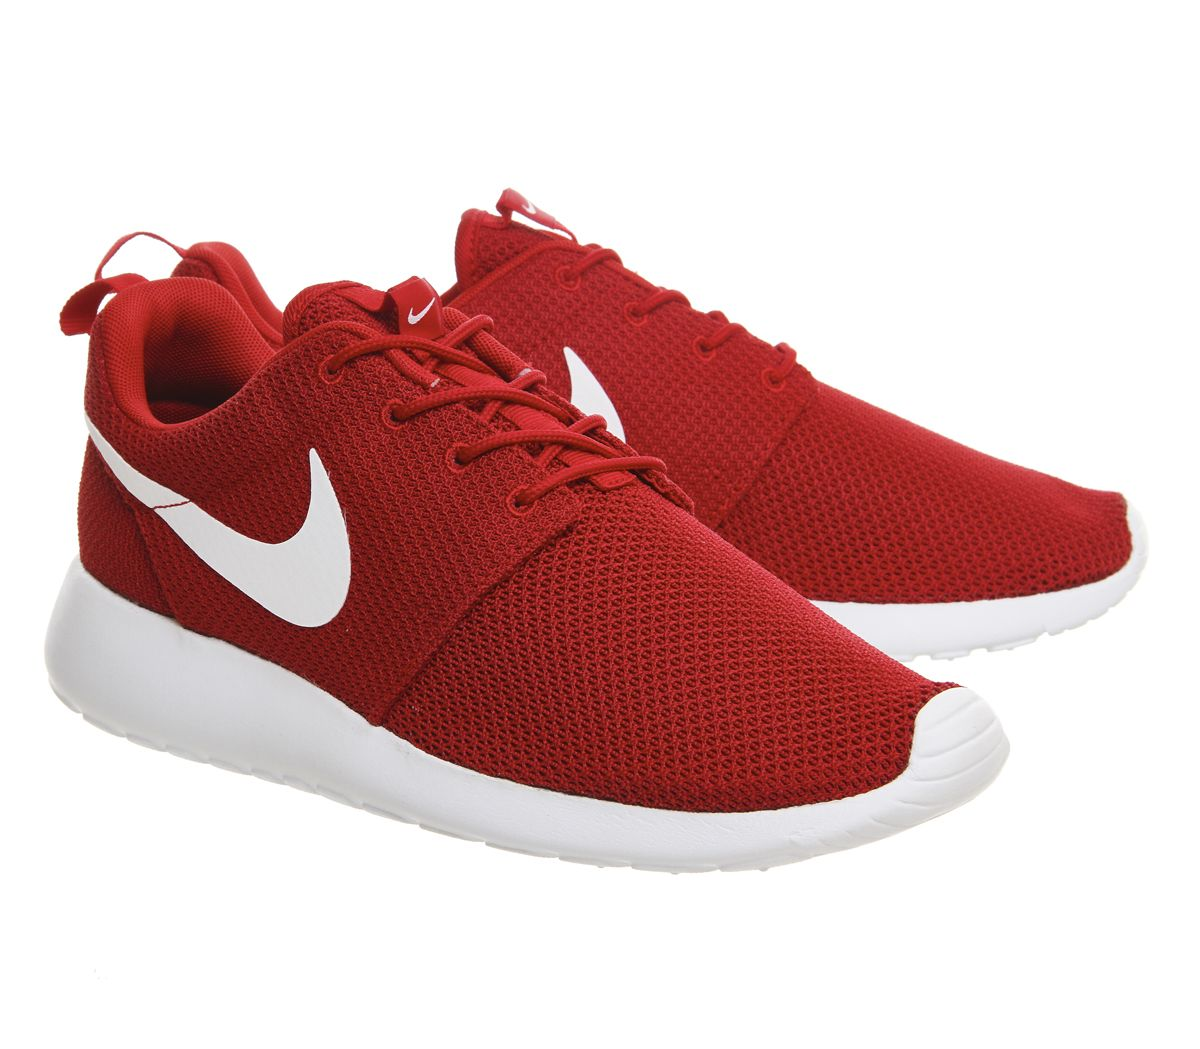 1456998ae355 Nike Roshe Run Gym Red - Unisex Sports